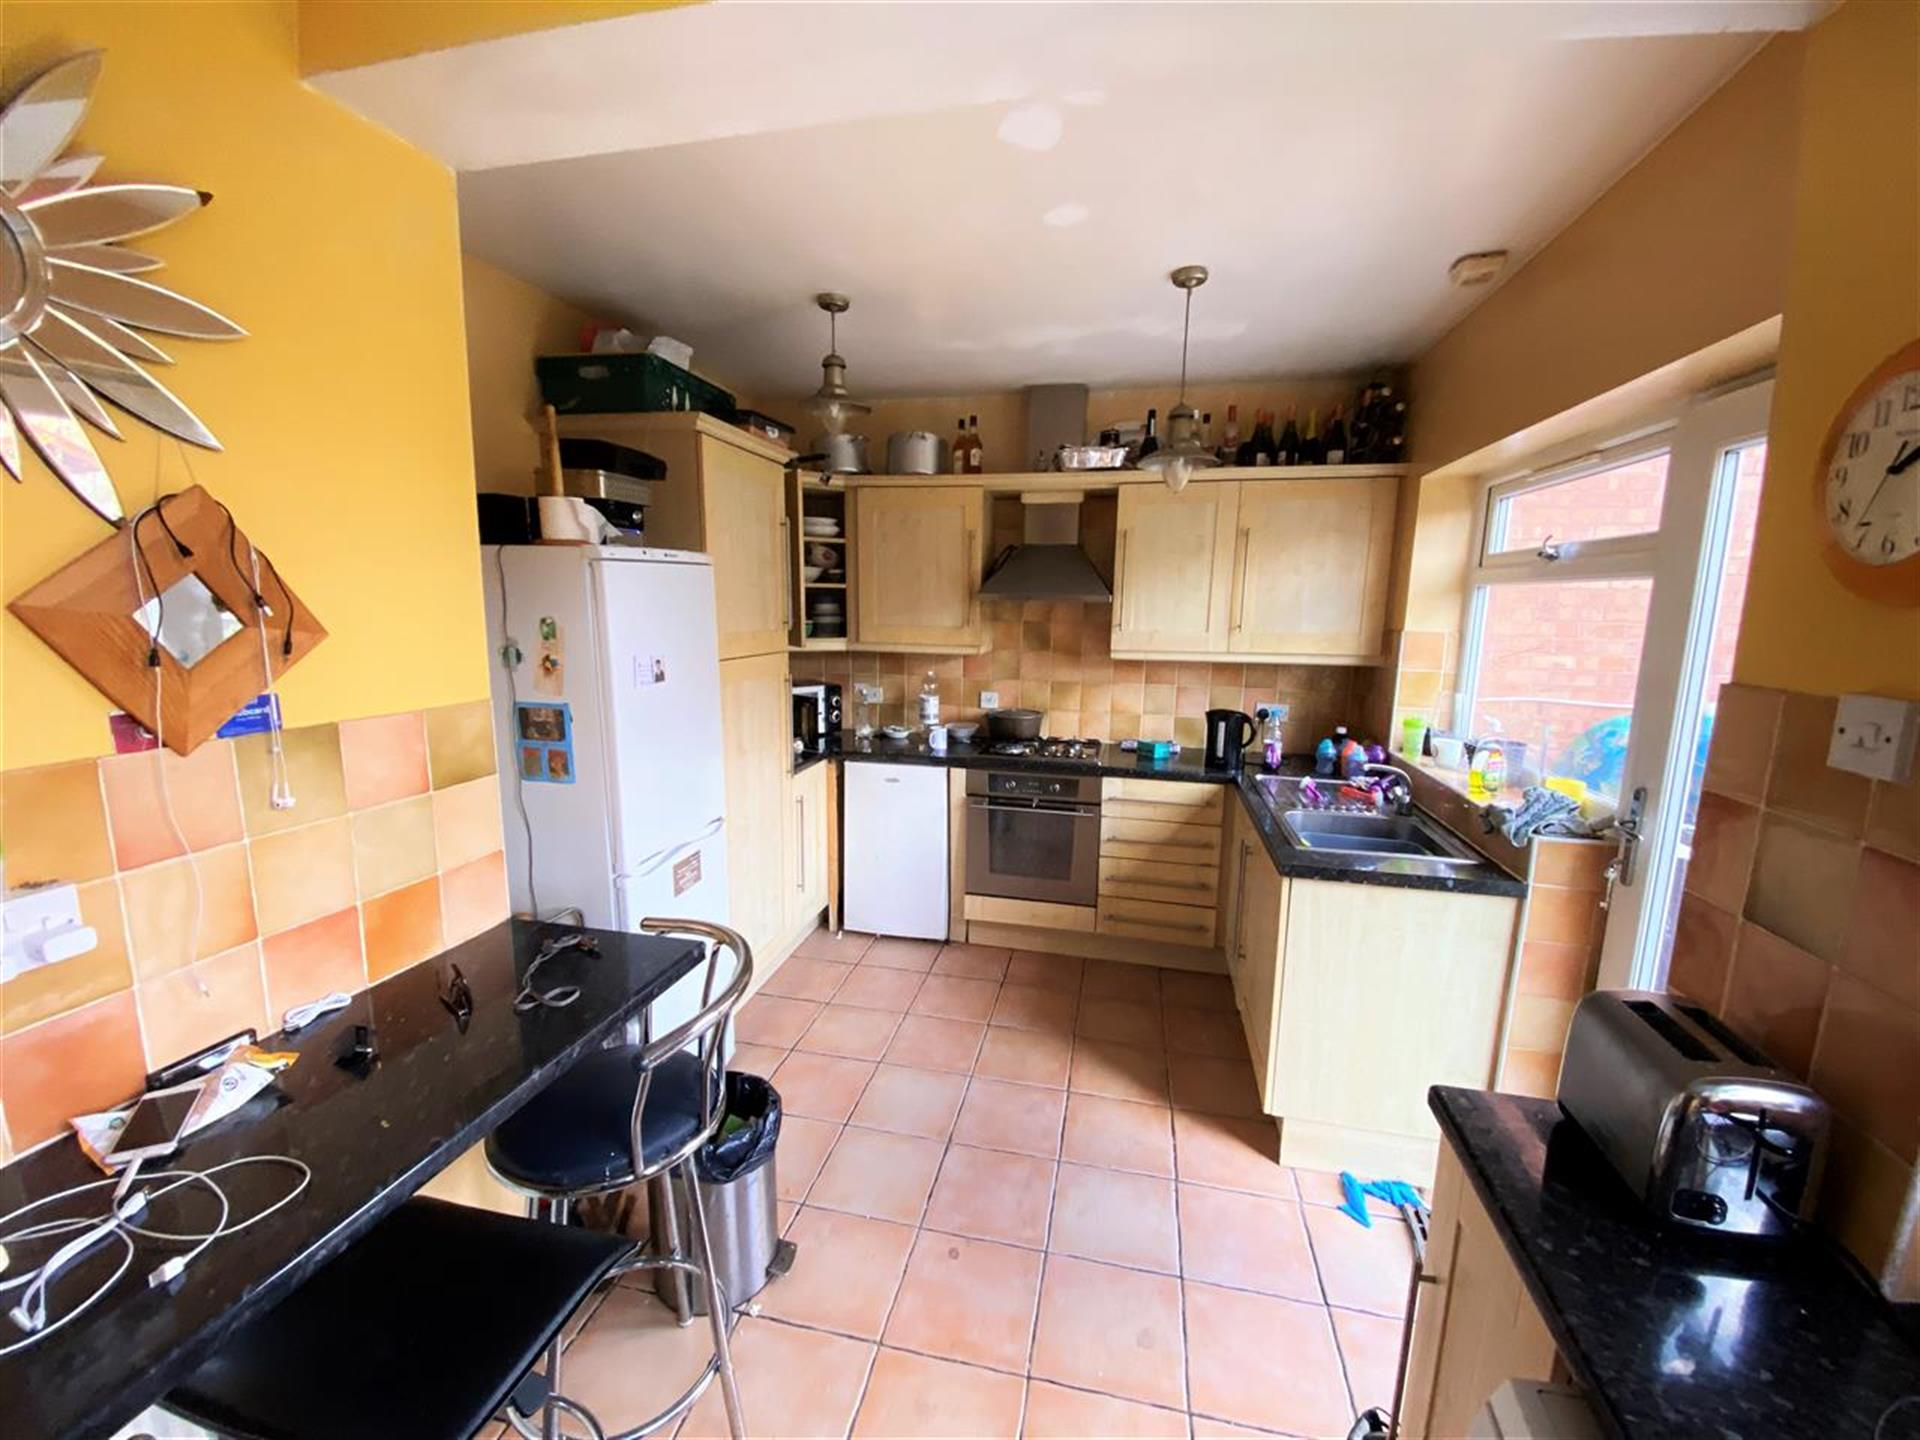 4 Bedroom Semi-detached House For Sale - Kitchen